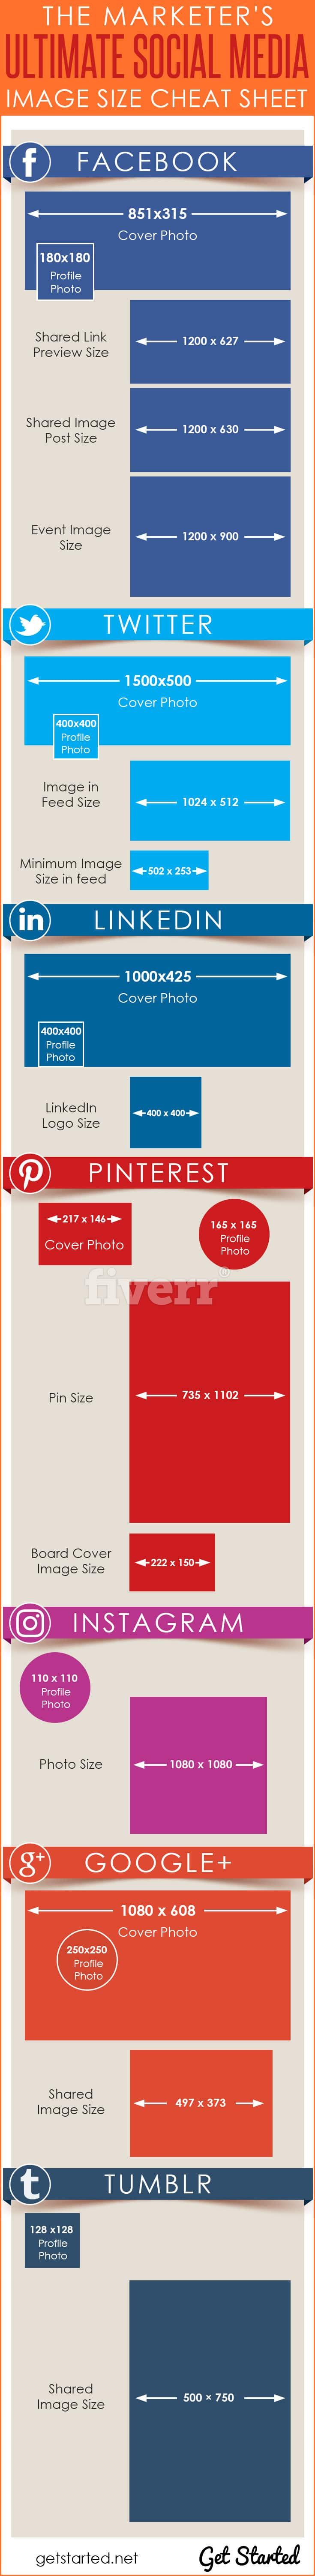 The Marketer's Ultimate Social Media Image Size Cheat Sheet 2017. Get social media image size for the perfect social sharing of your site images and pictures. These image dimensions will allow you to show percet images on Facebook, Twitter, Google+, Instagram, Pinterest, Tumblr, and LinkedIn.